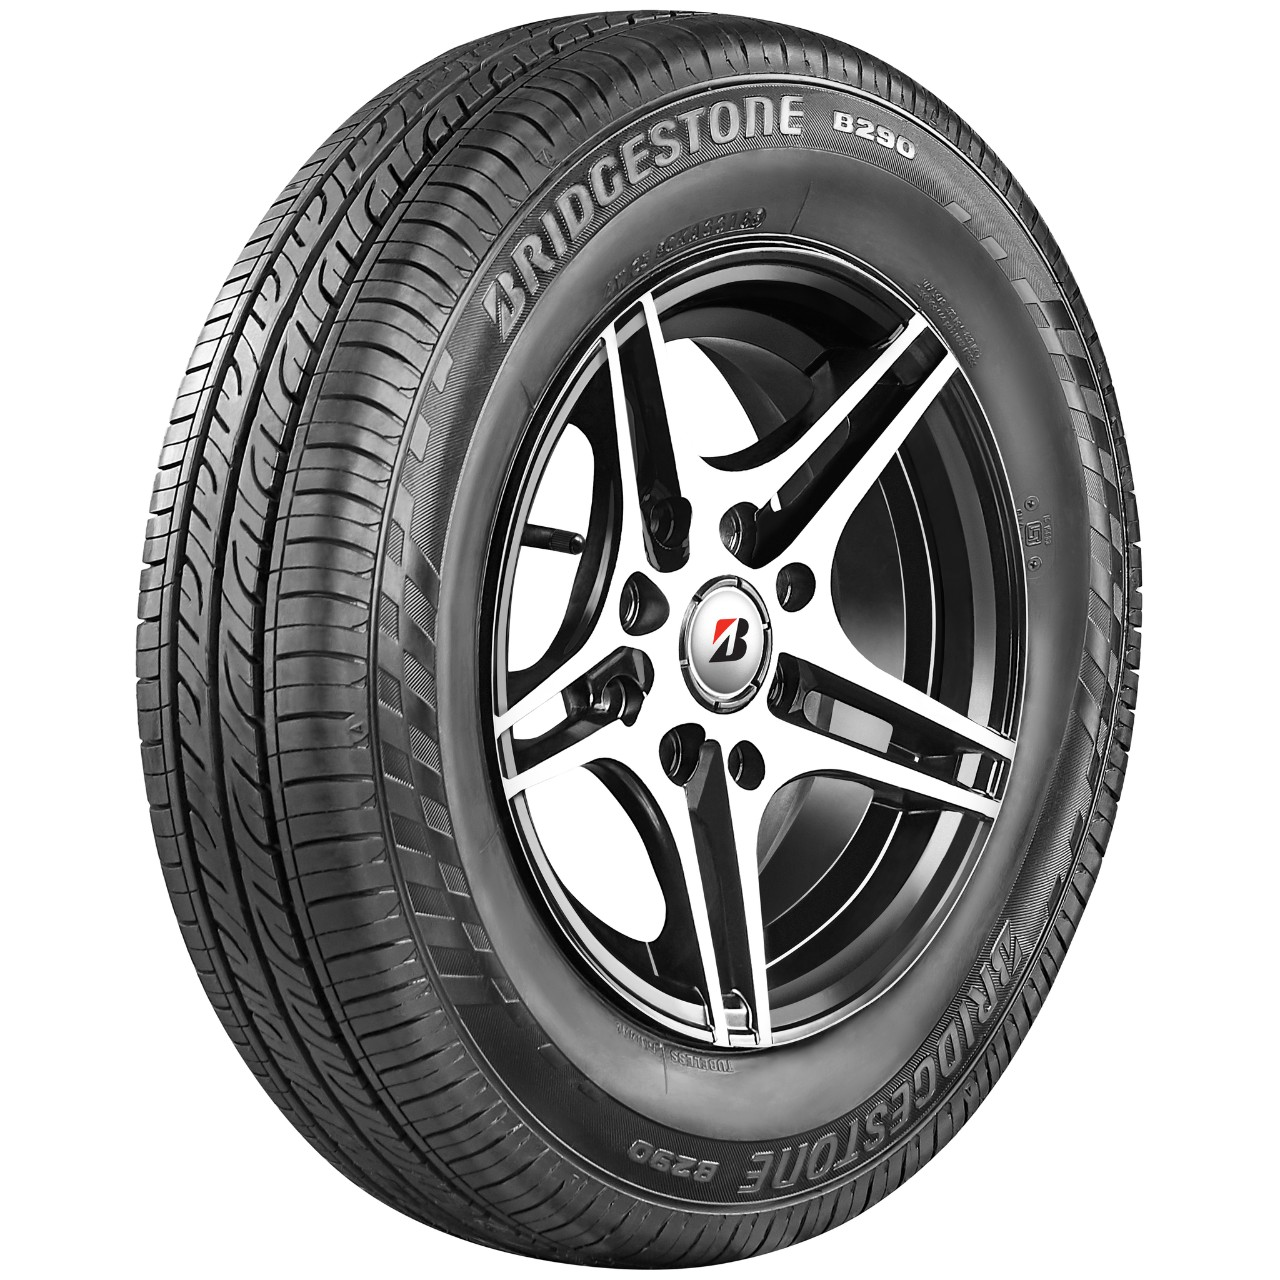 Bridgestone B-Series B290